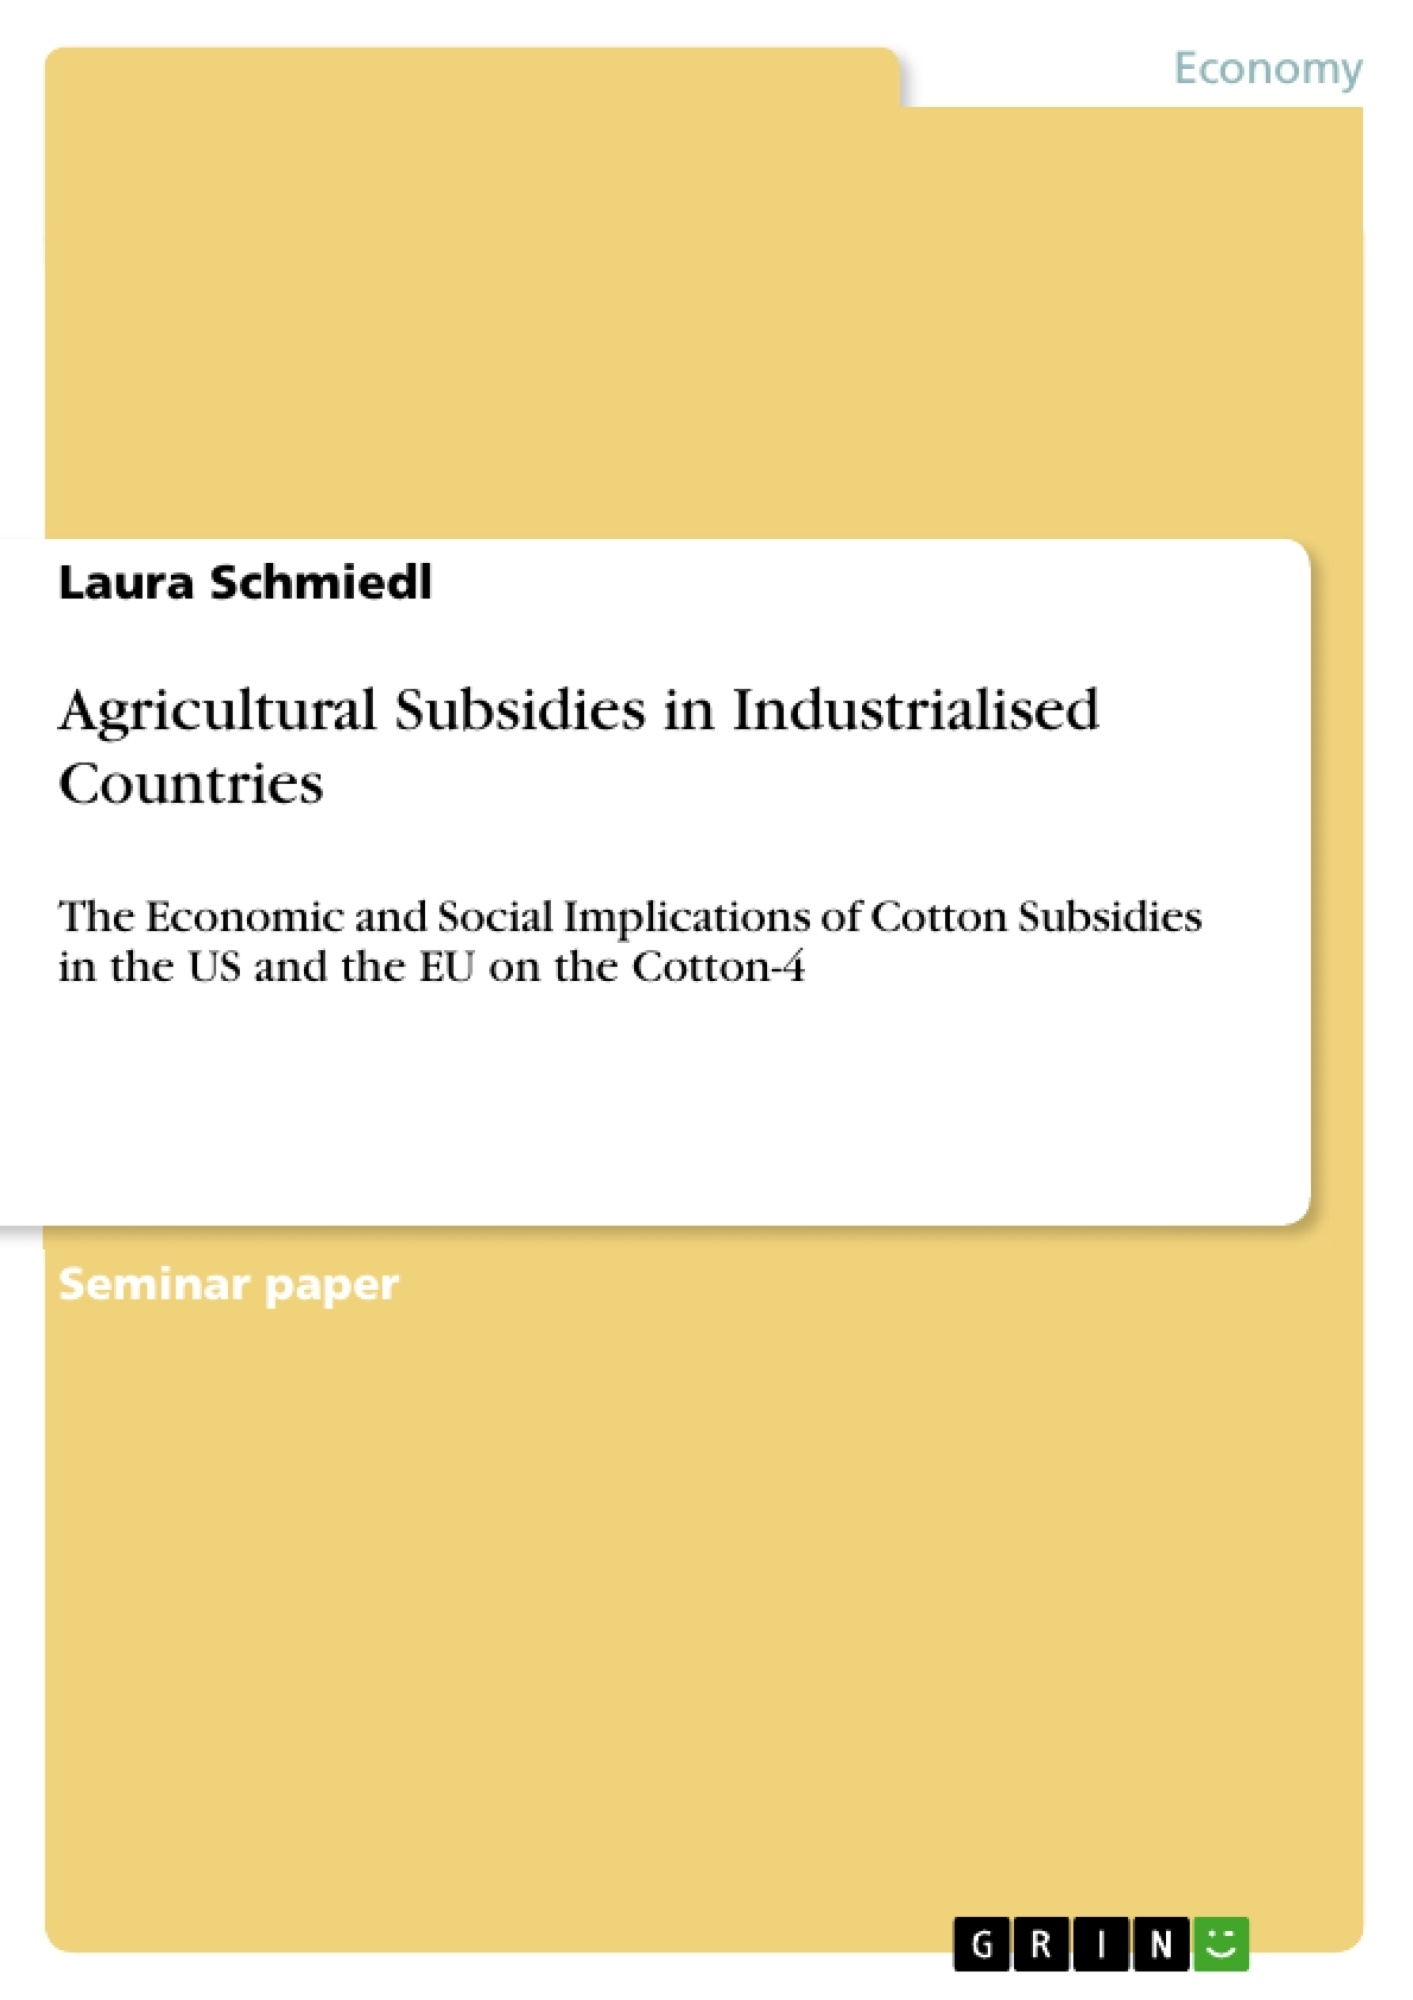 Title: Agricultural Subsidies in Industrialised Countries